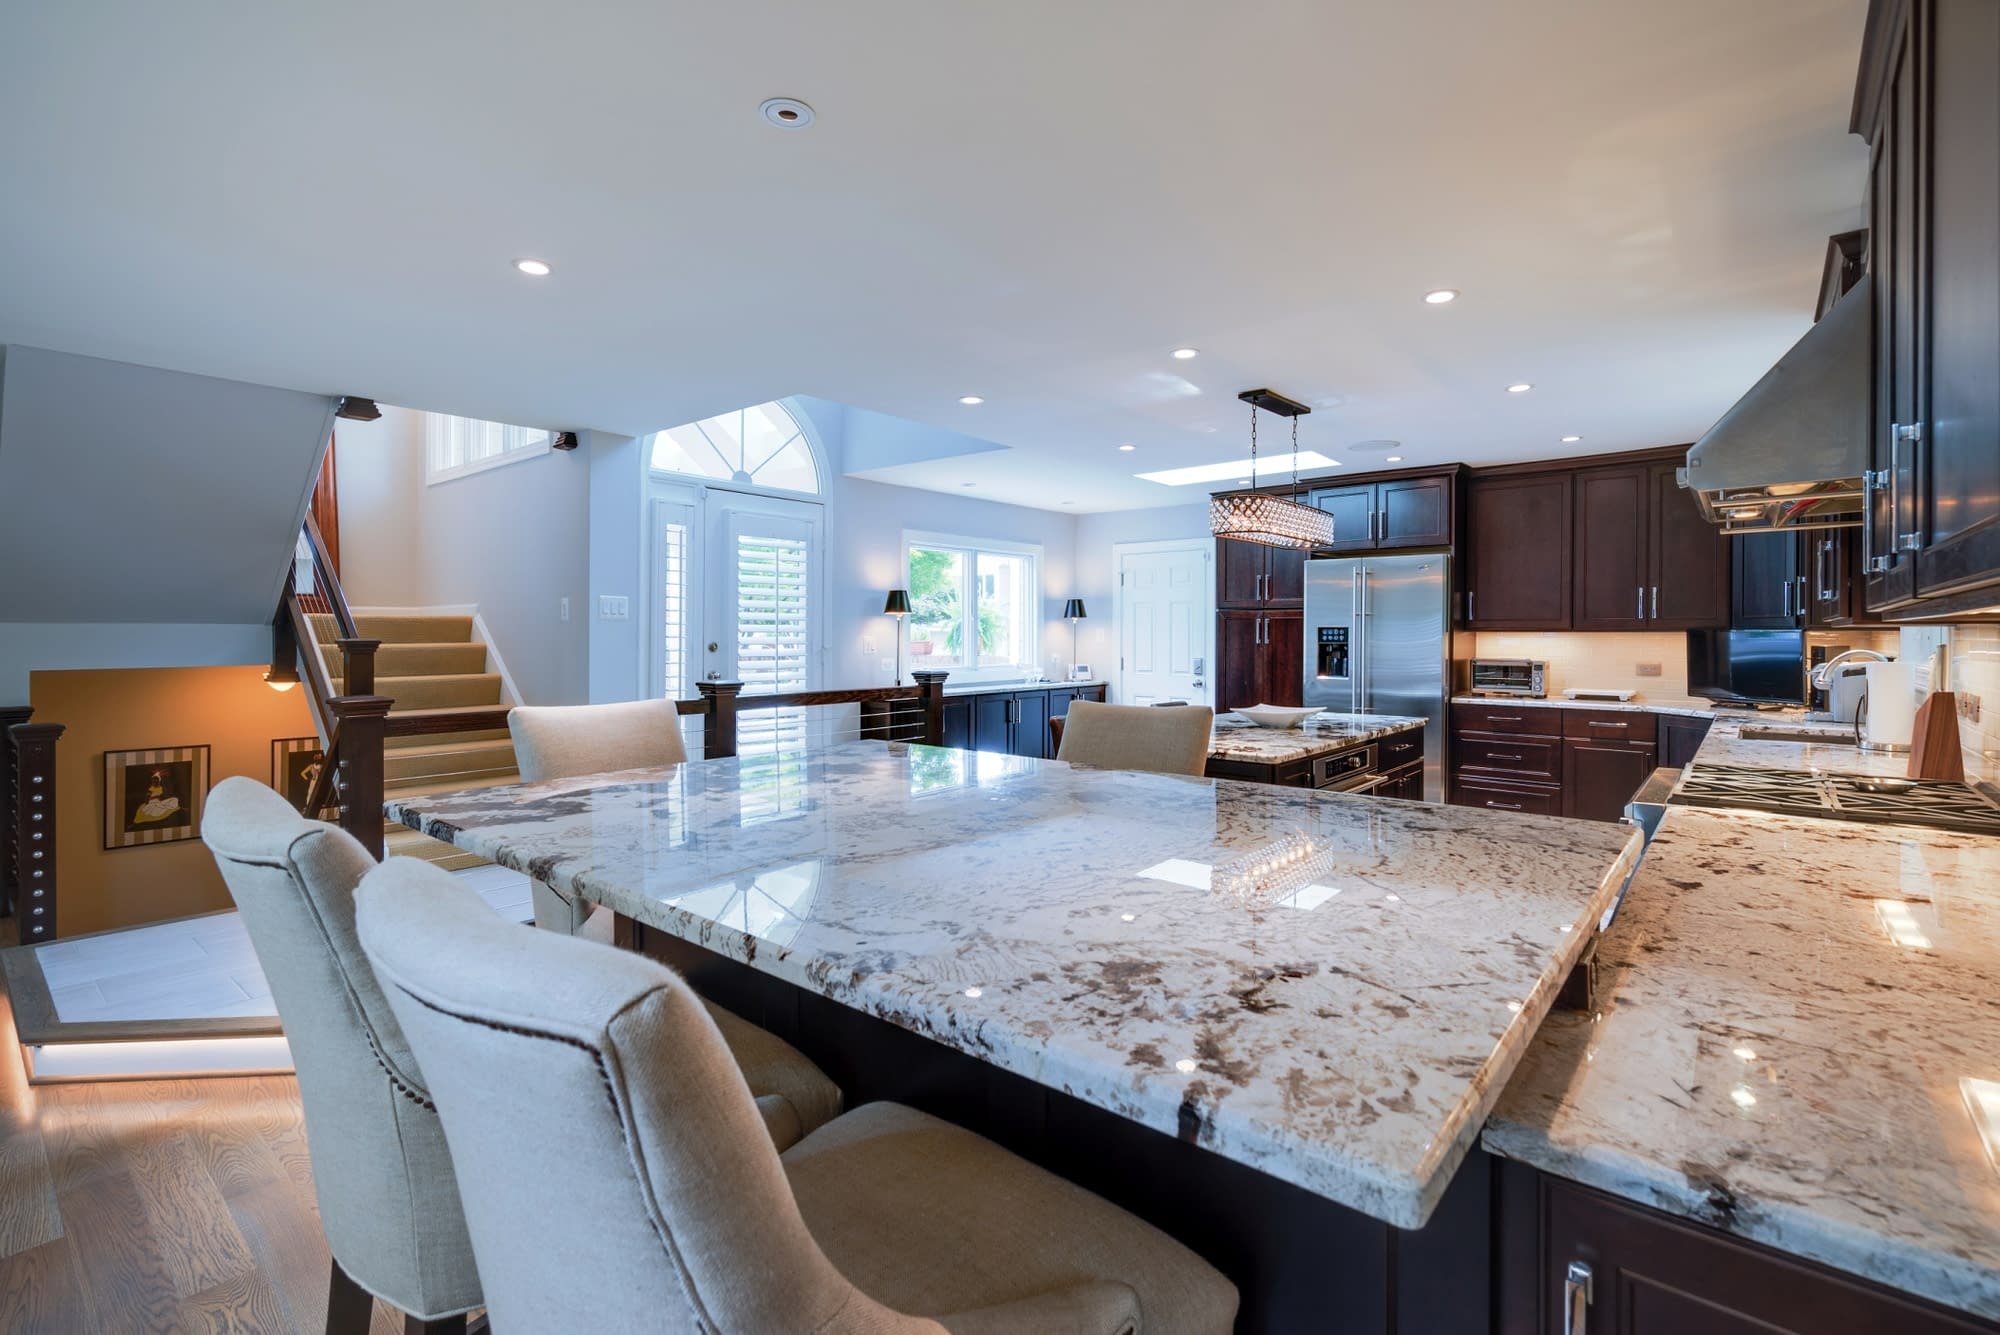 Northern Virginia kitchen remodeling, home remodeling northern virginia, kitchen remodeling